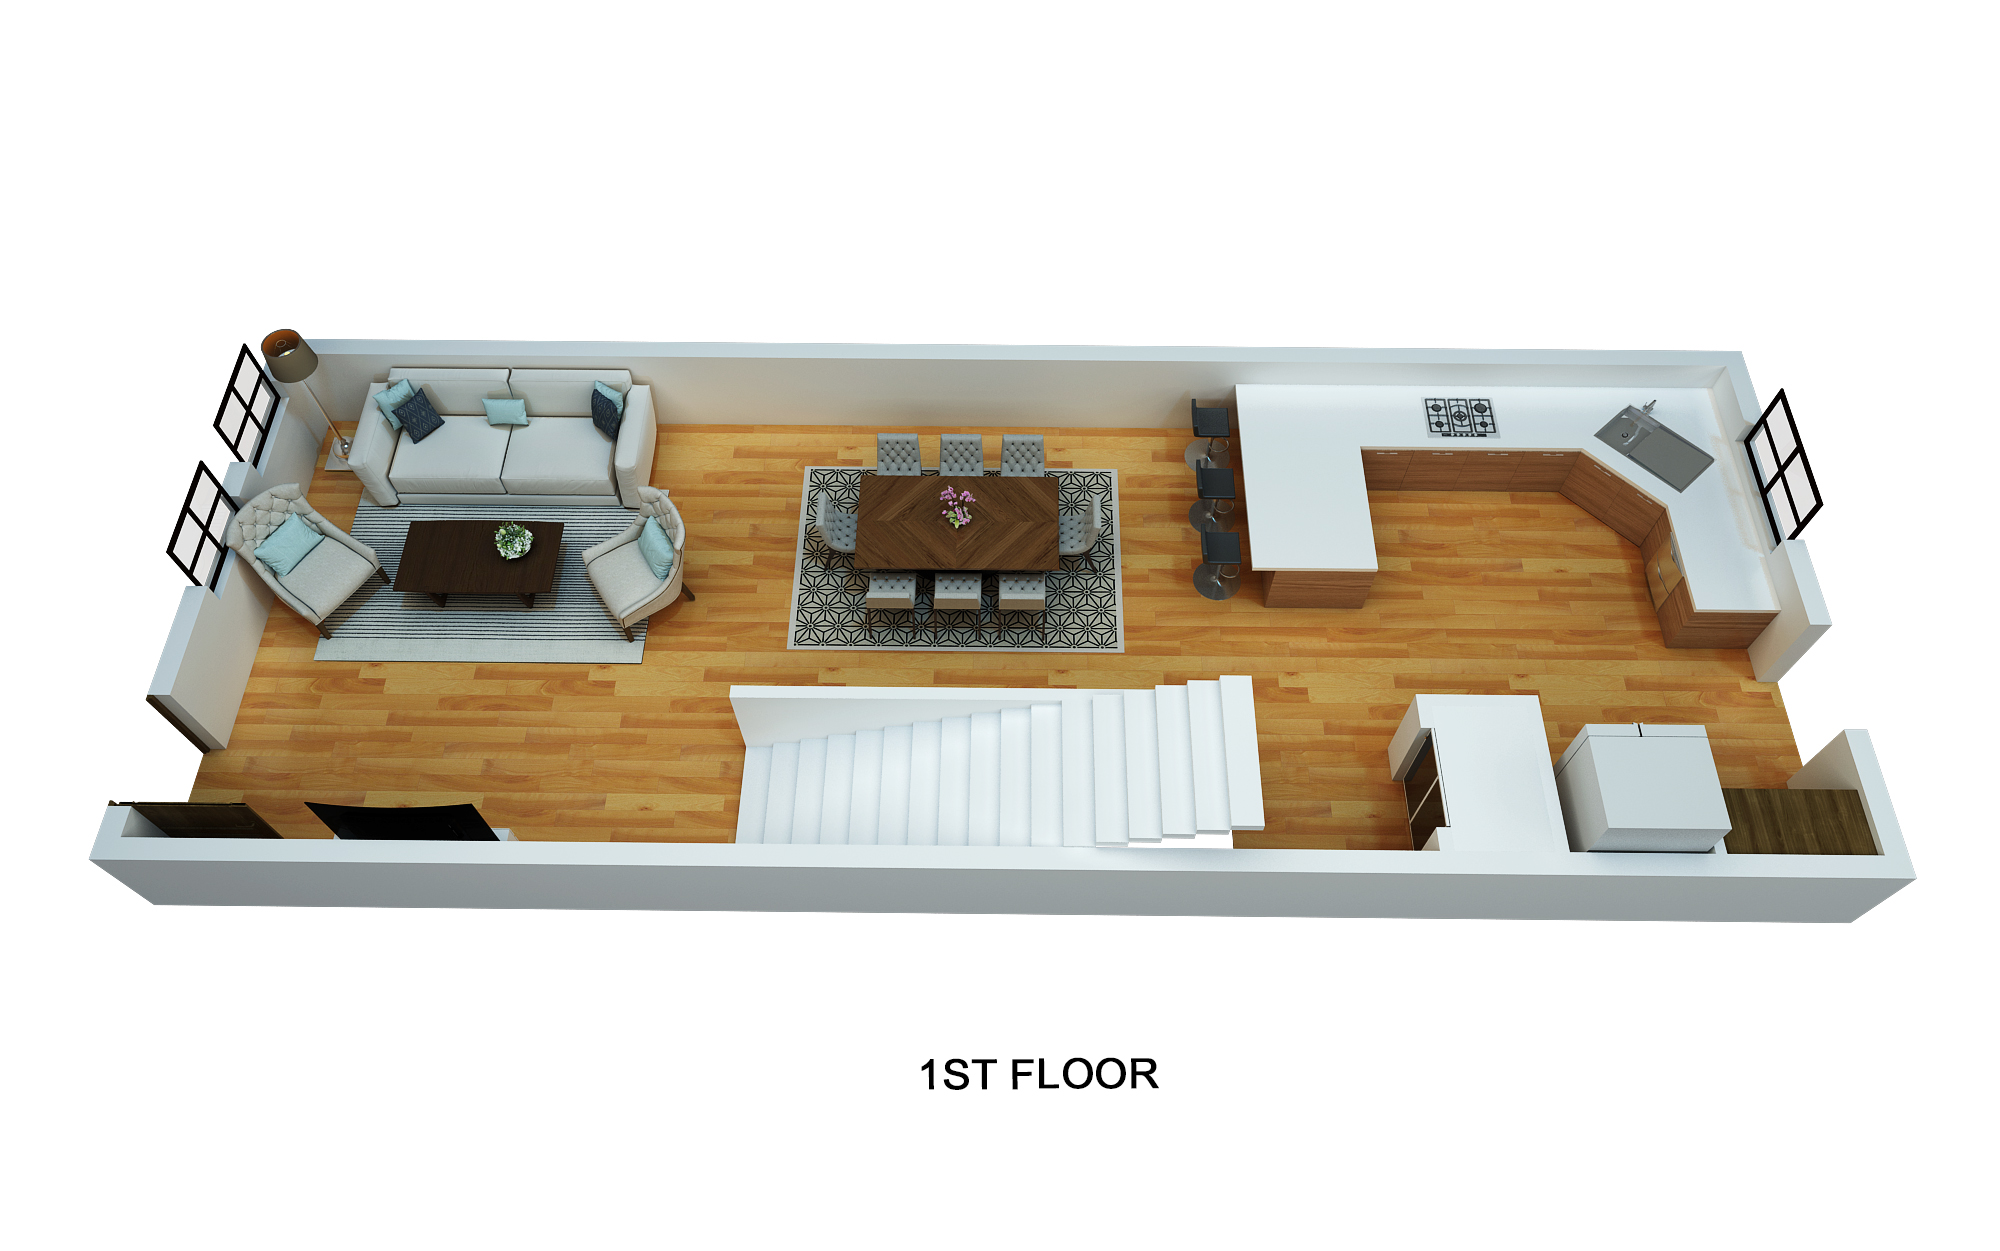 5064-firstfloor.jpg